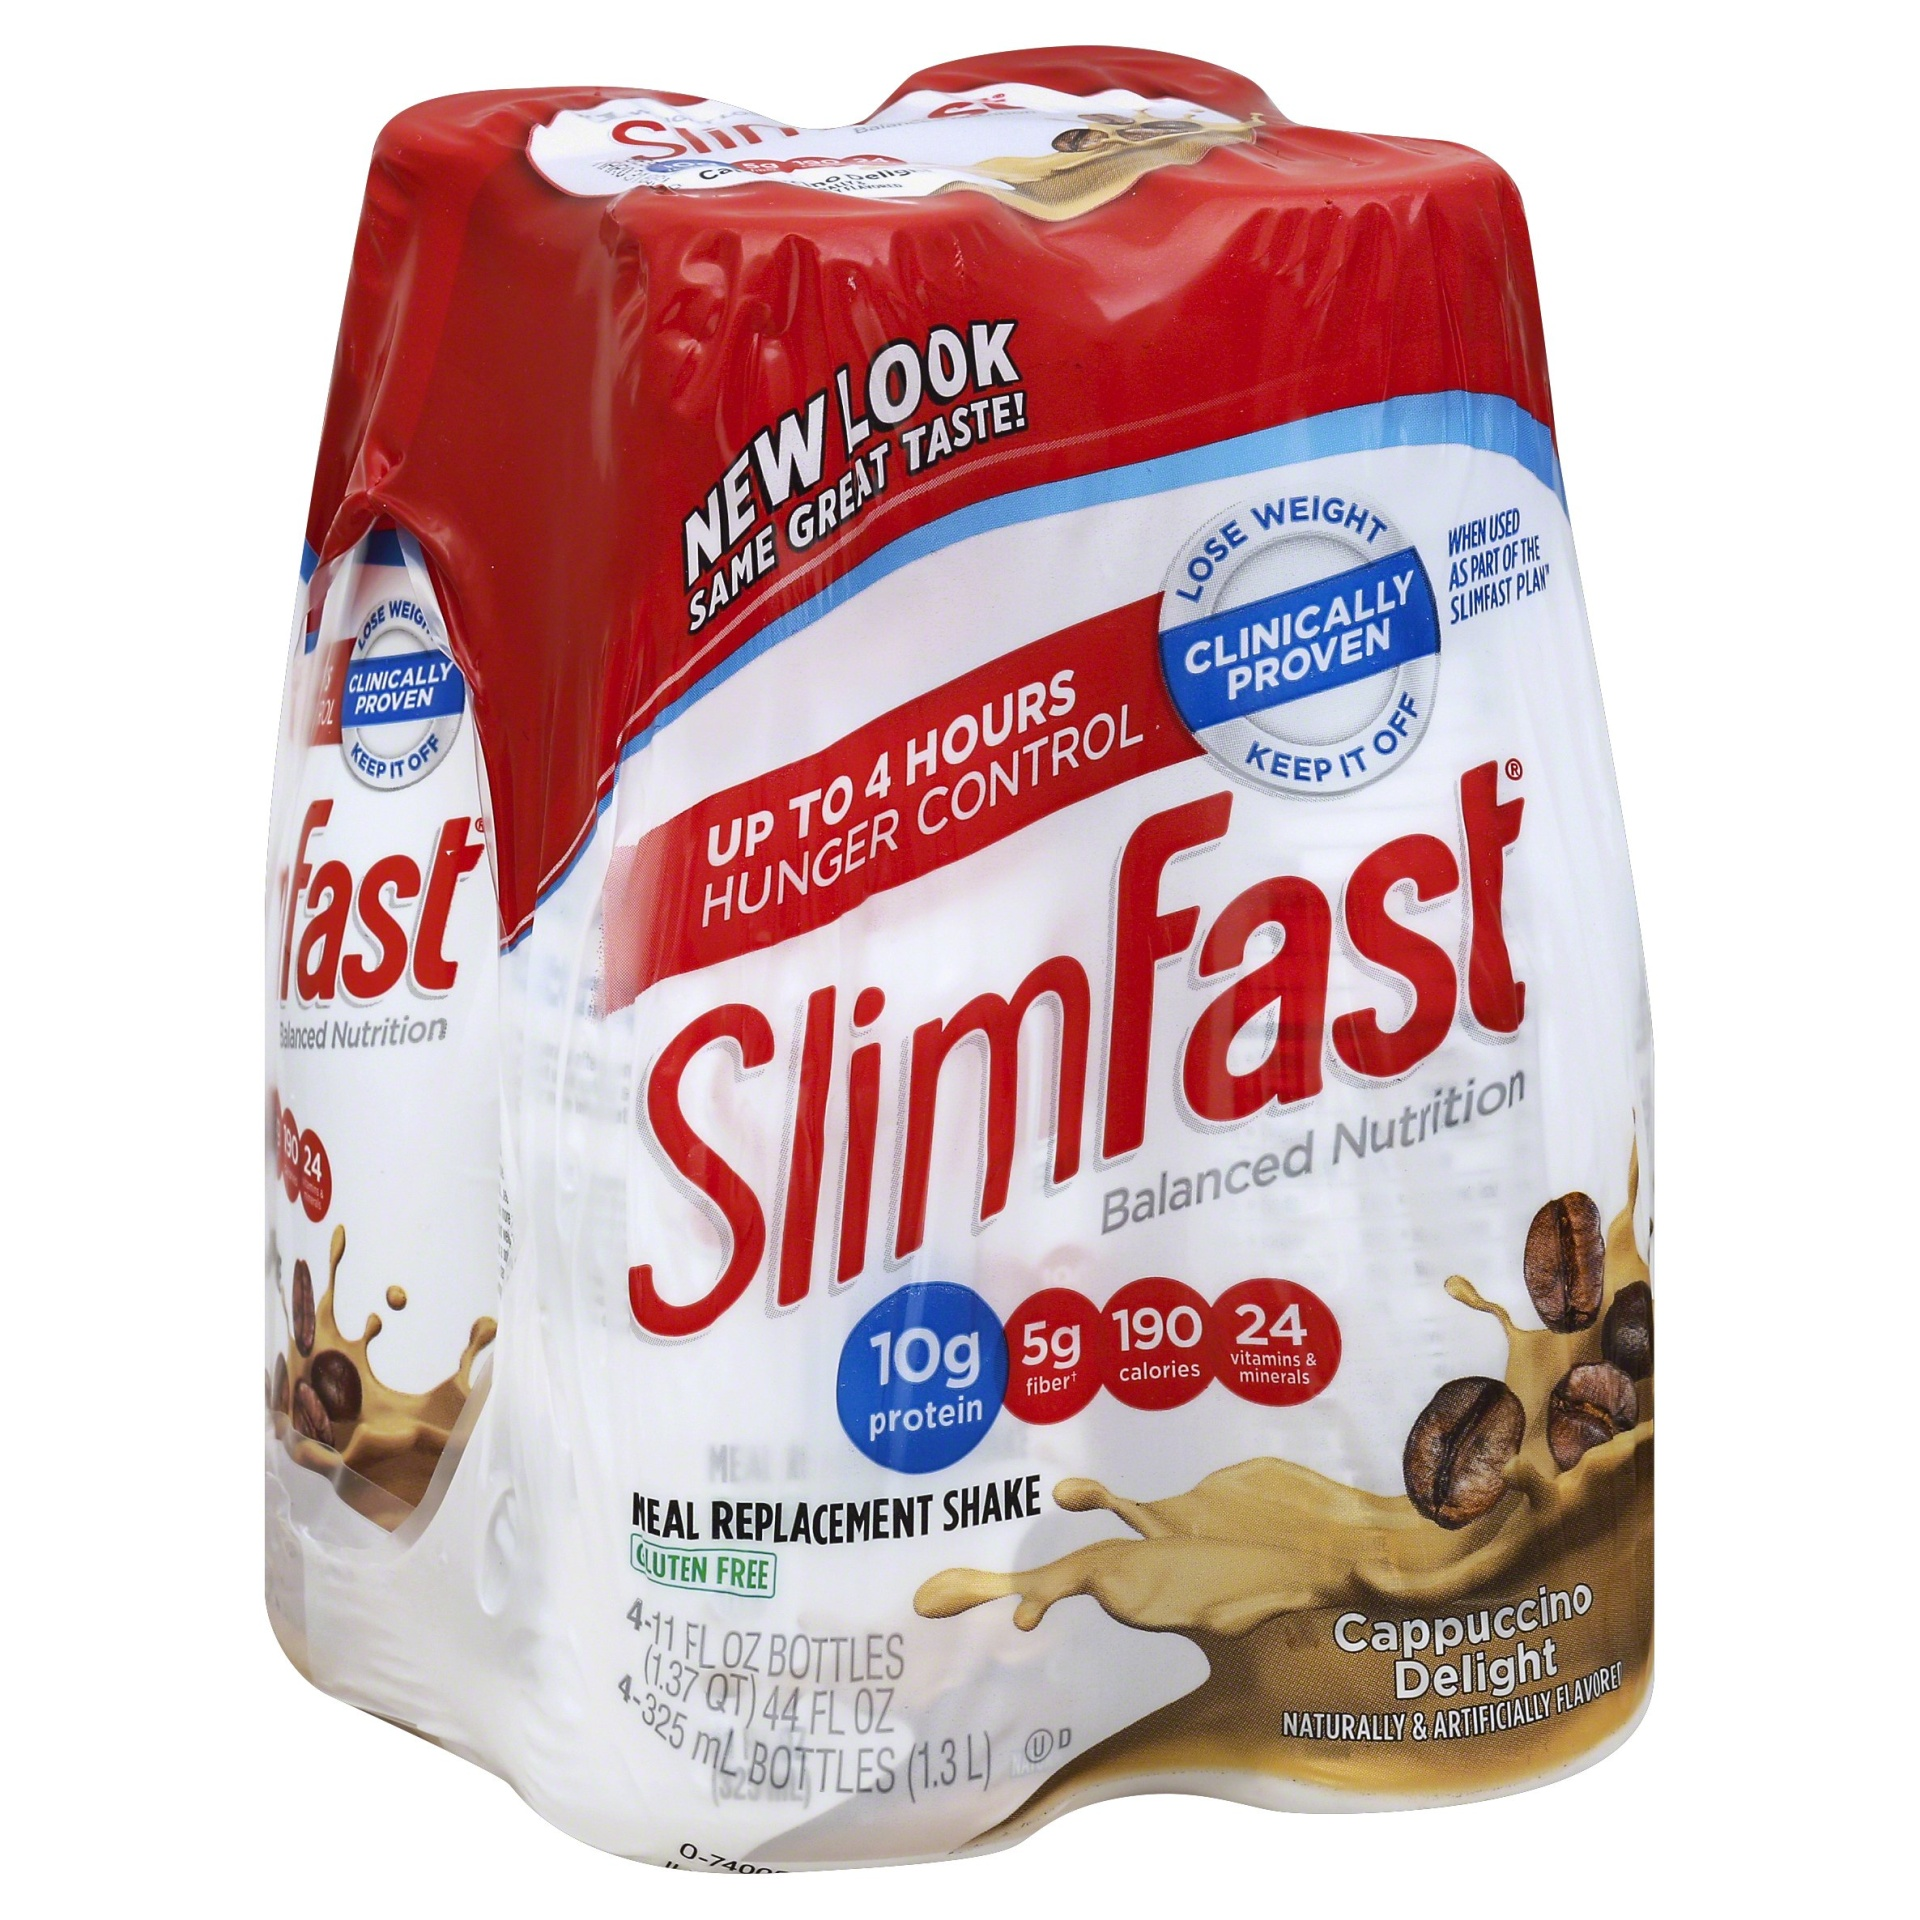 slide 1 of 6, SilmFast Original Cappuccino Delight Meal Replacement Shakes,